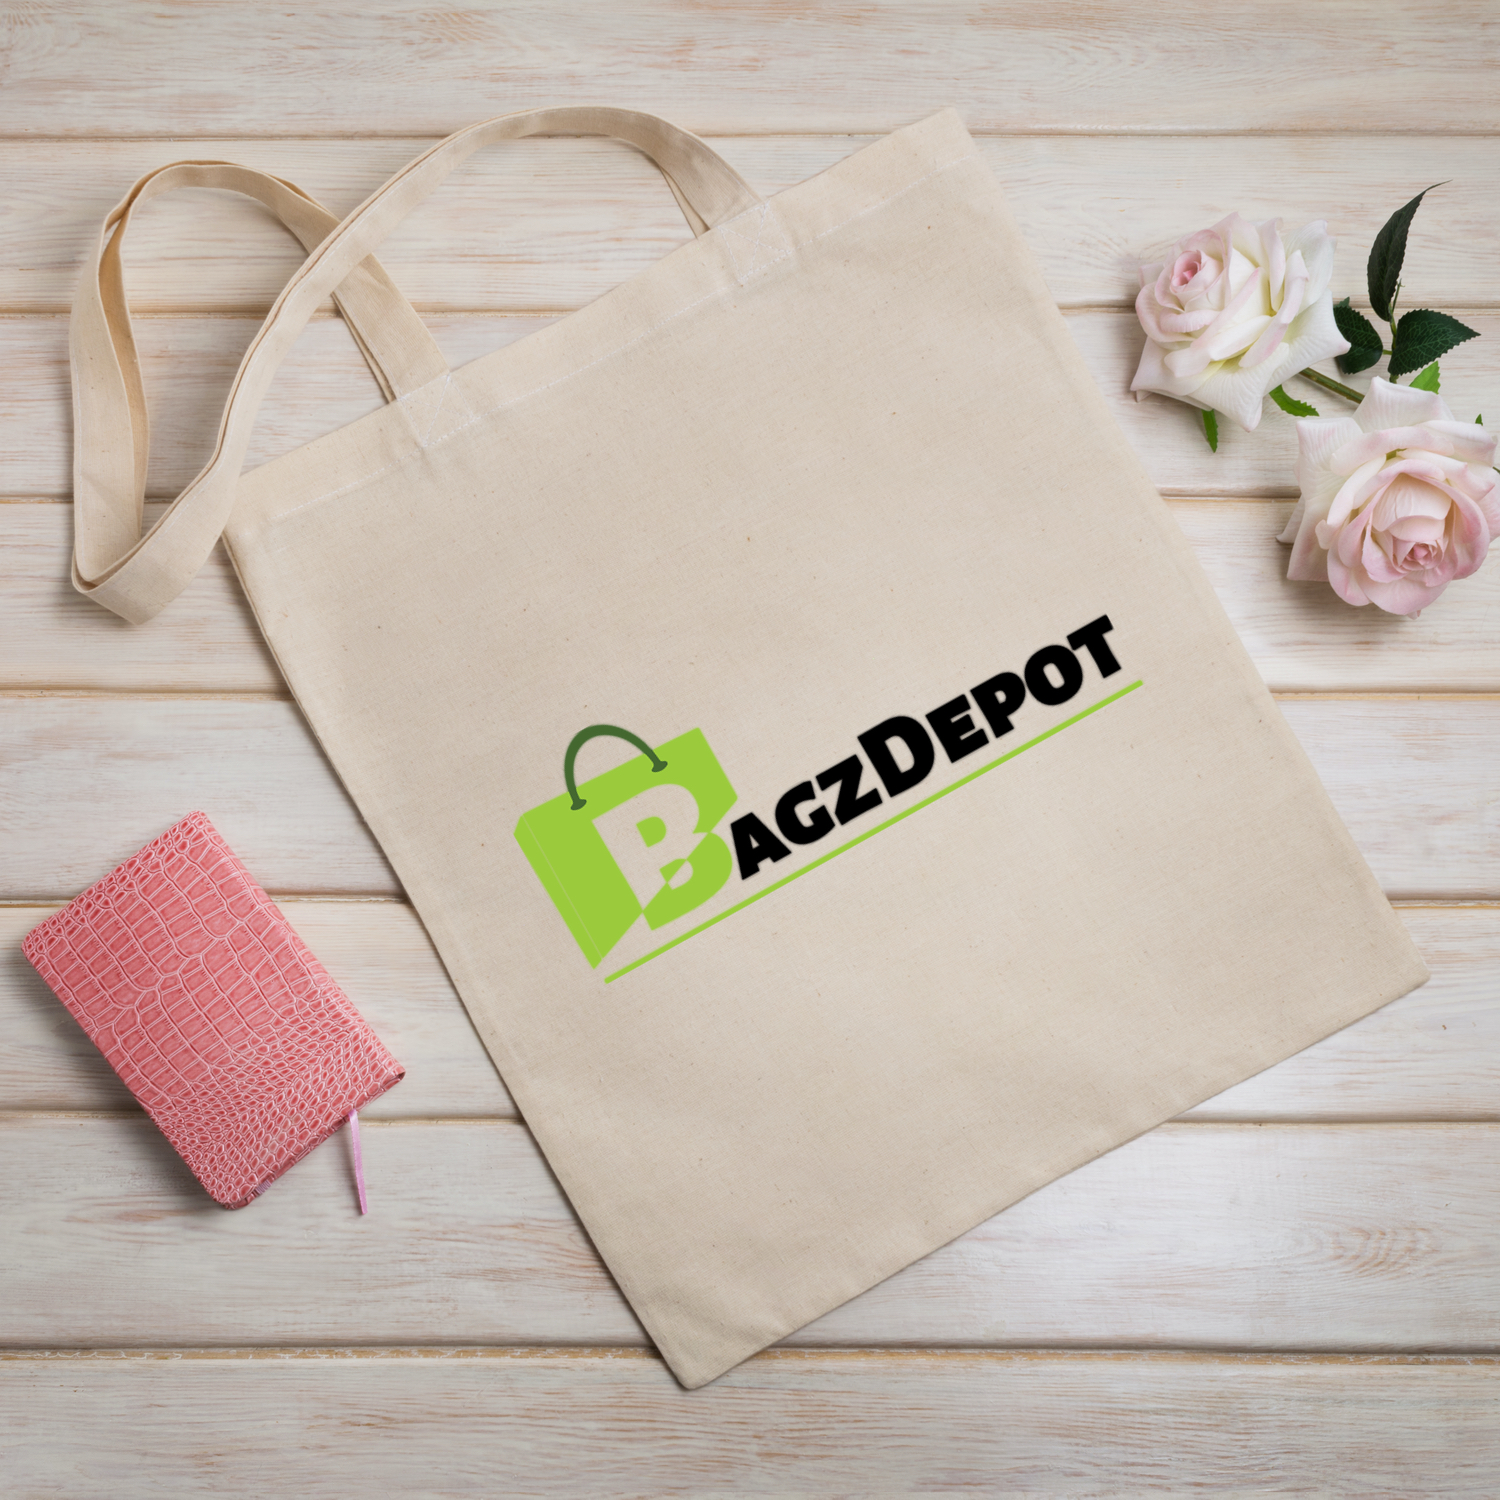 Promote With a Tote!: 4 Reasons Your Business Needs Custom Tote Bags